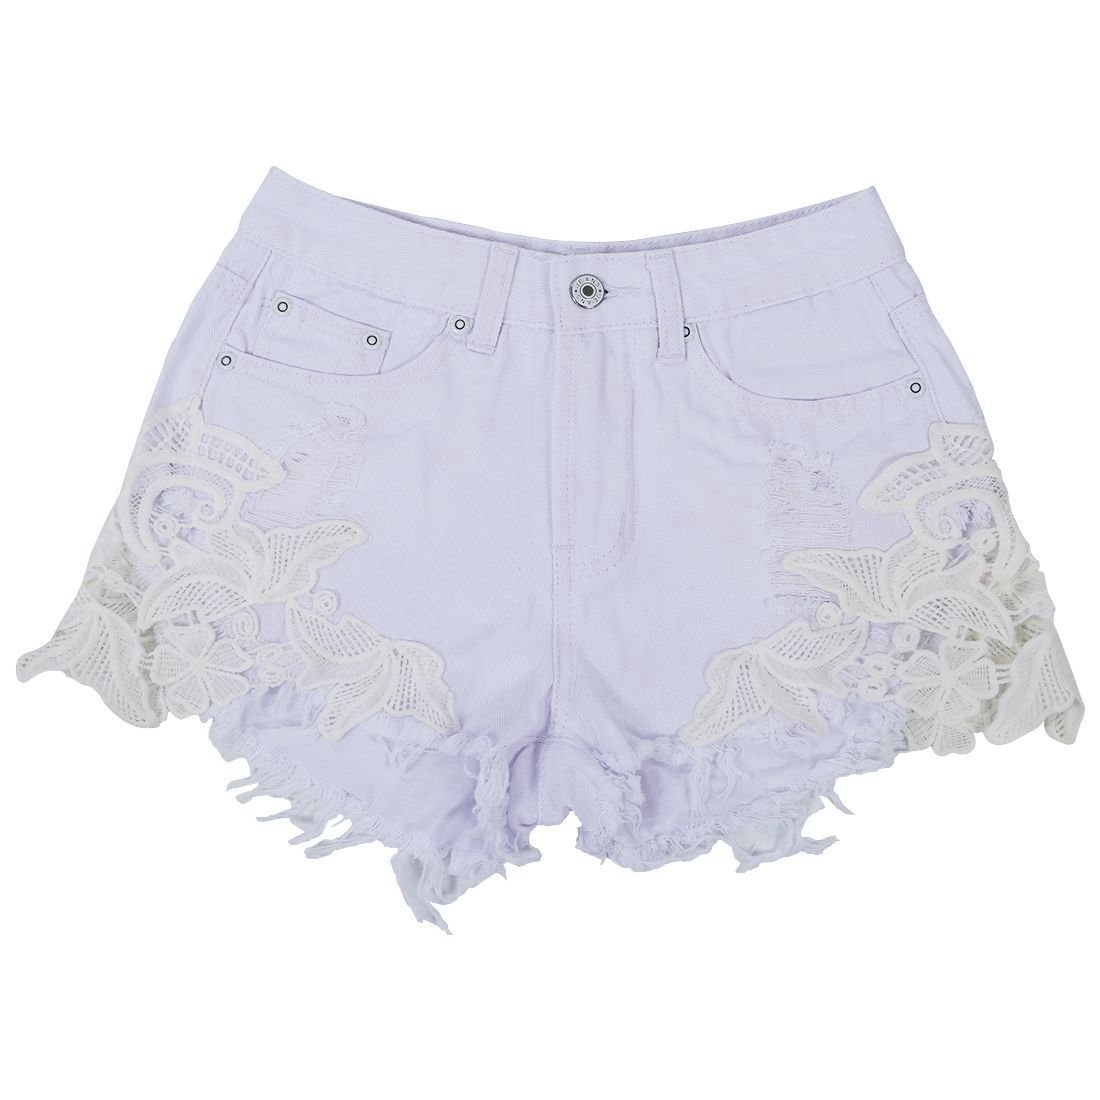 61696abb25c Woman's sexy lace Shorts Jeans - TOOGOO(R)Woman's New sexy lace patchwork pants  high waisted tassels ripped shorts jeans trousers, White L: Amazon.co.uk:  ...